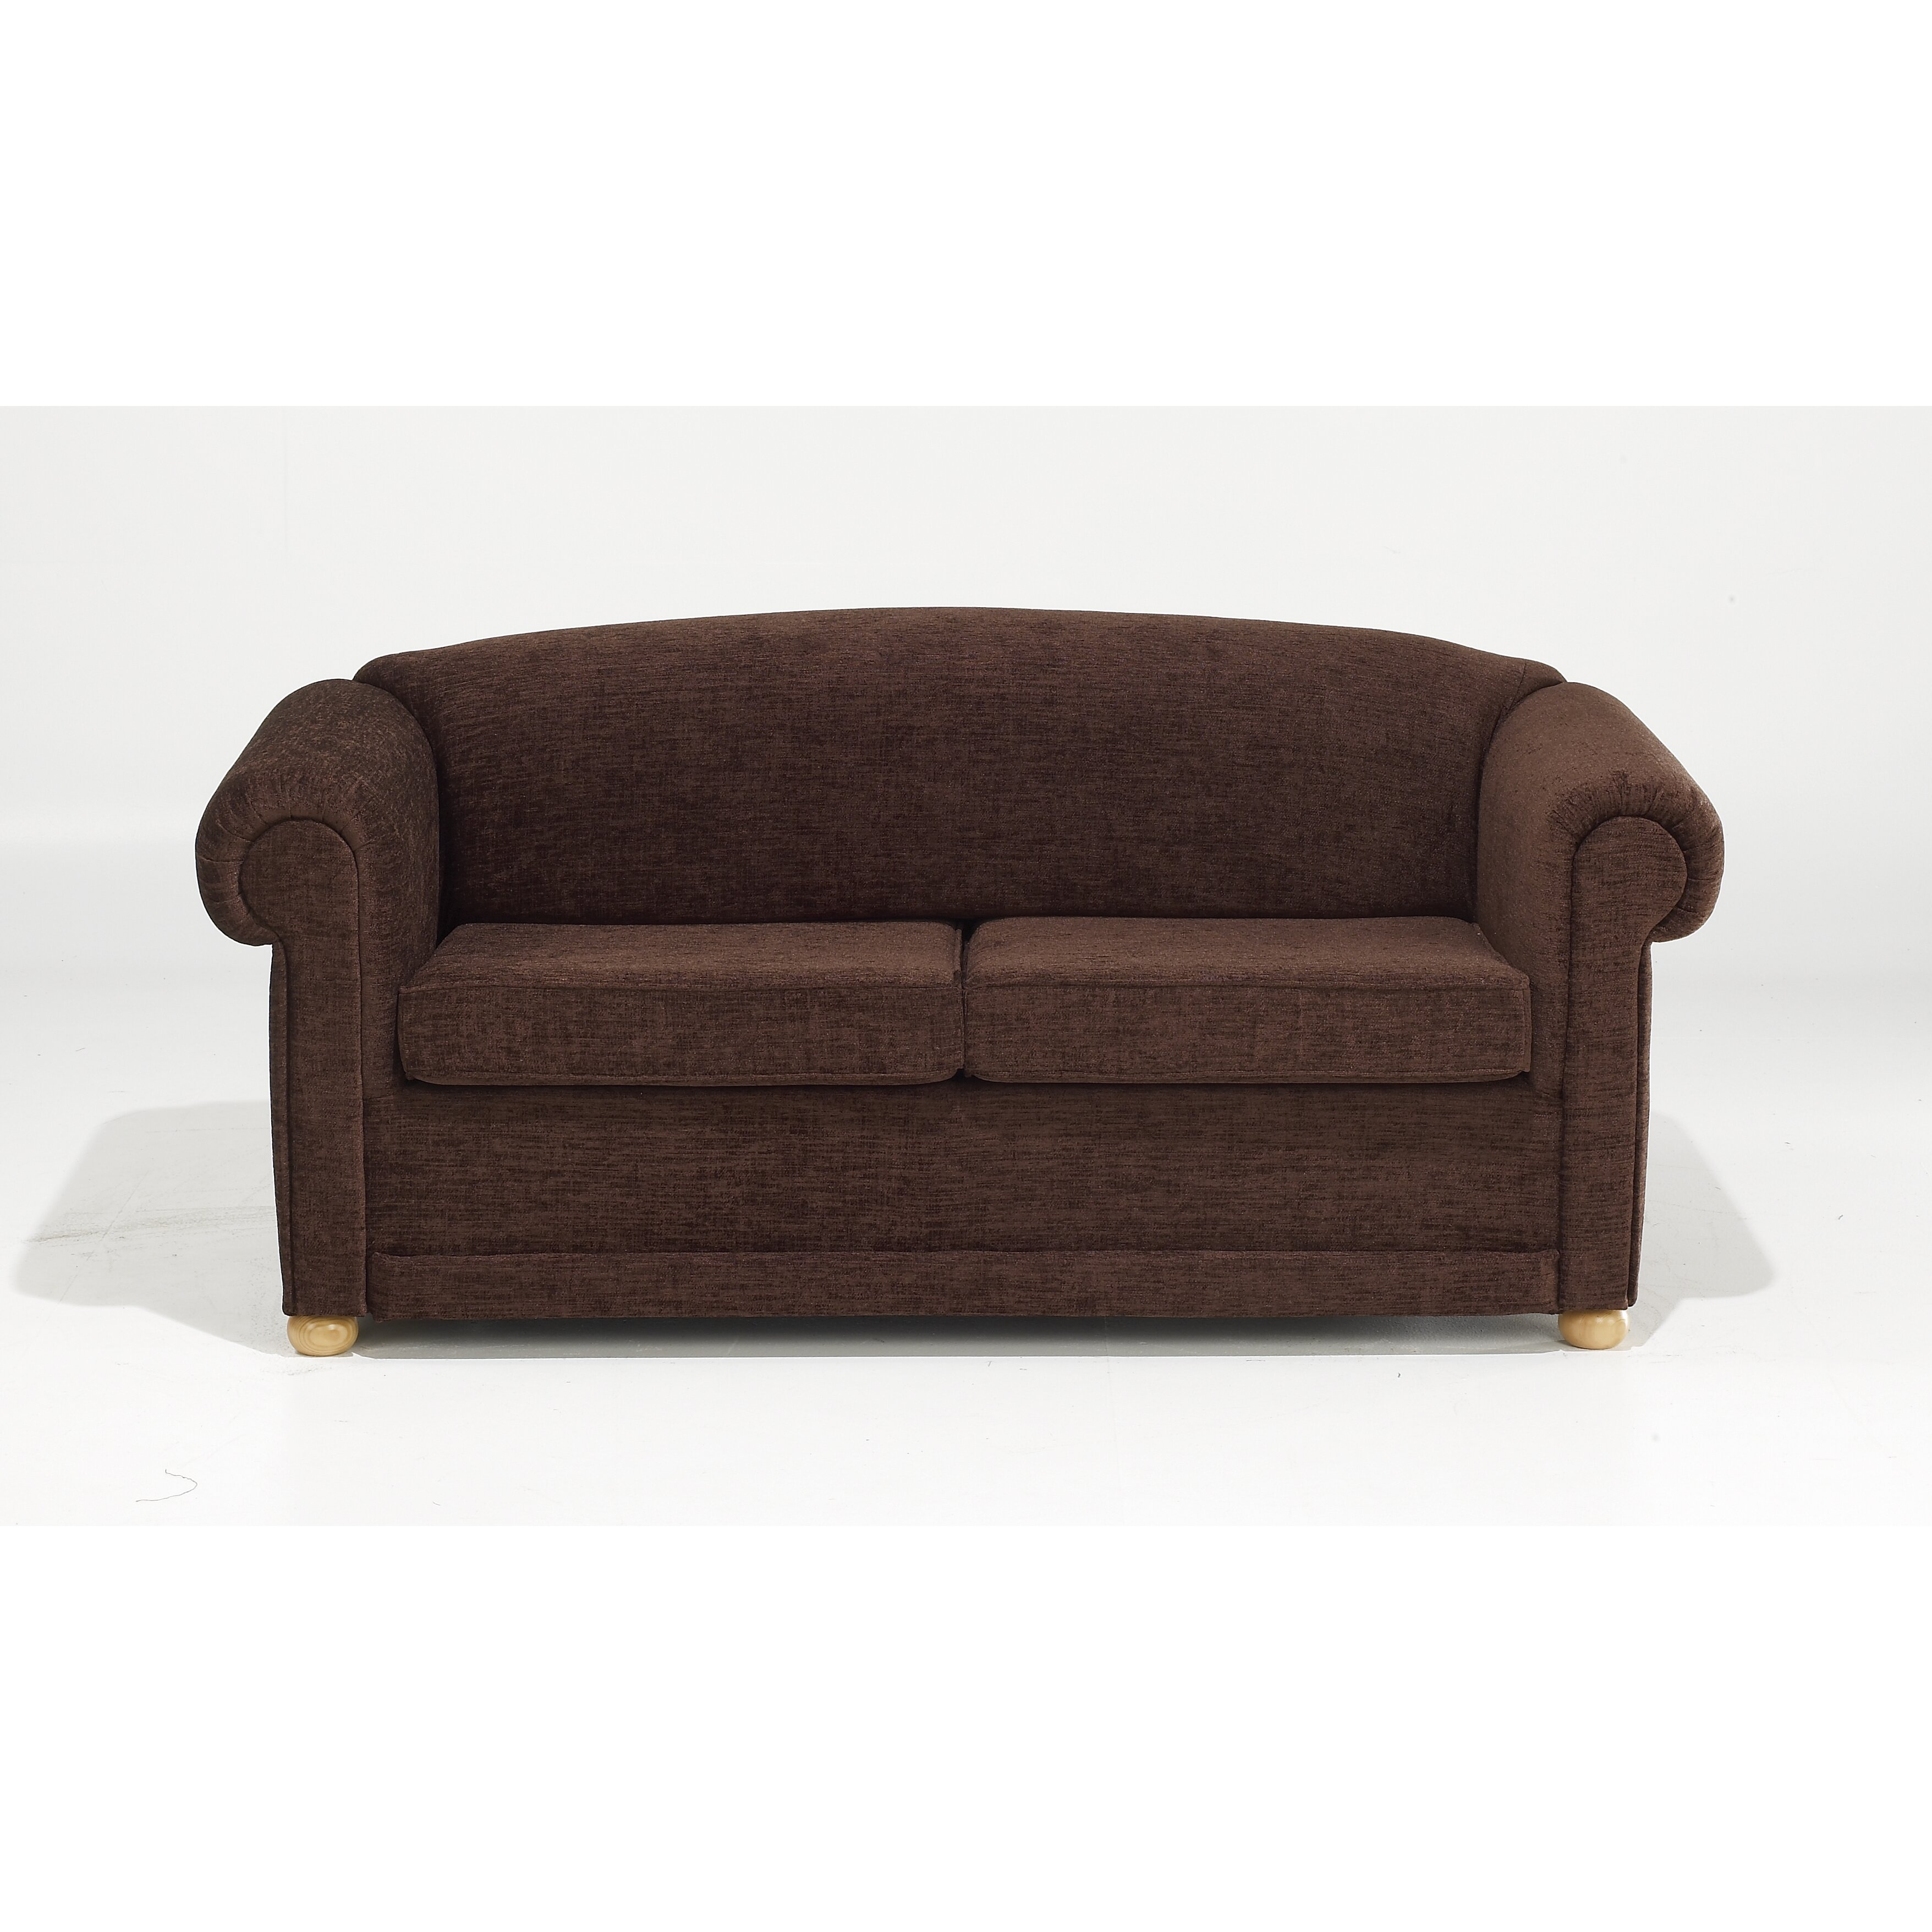 churchfield chesterfield 2 seater fold out loveseat. Black Bedroom Furniture Sets. Home Design Ideas